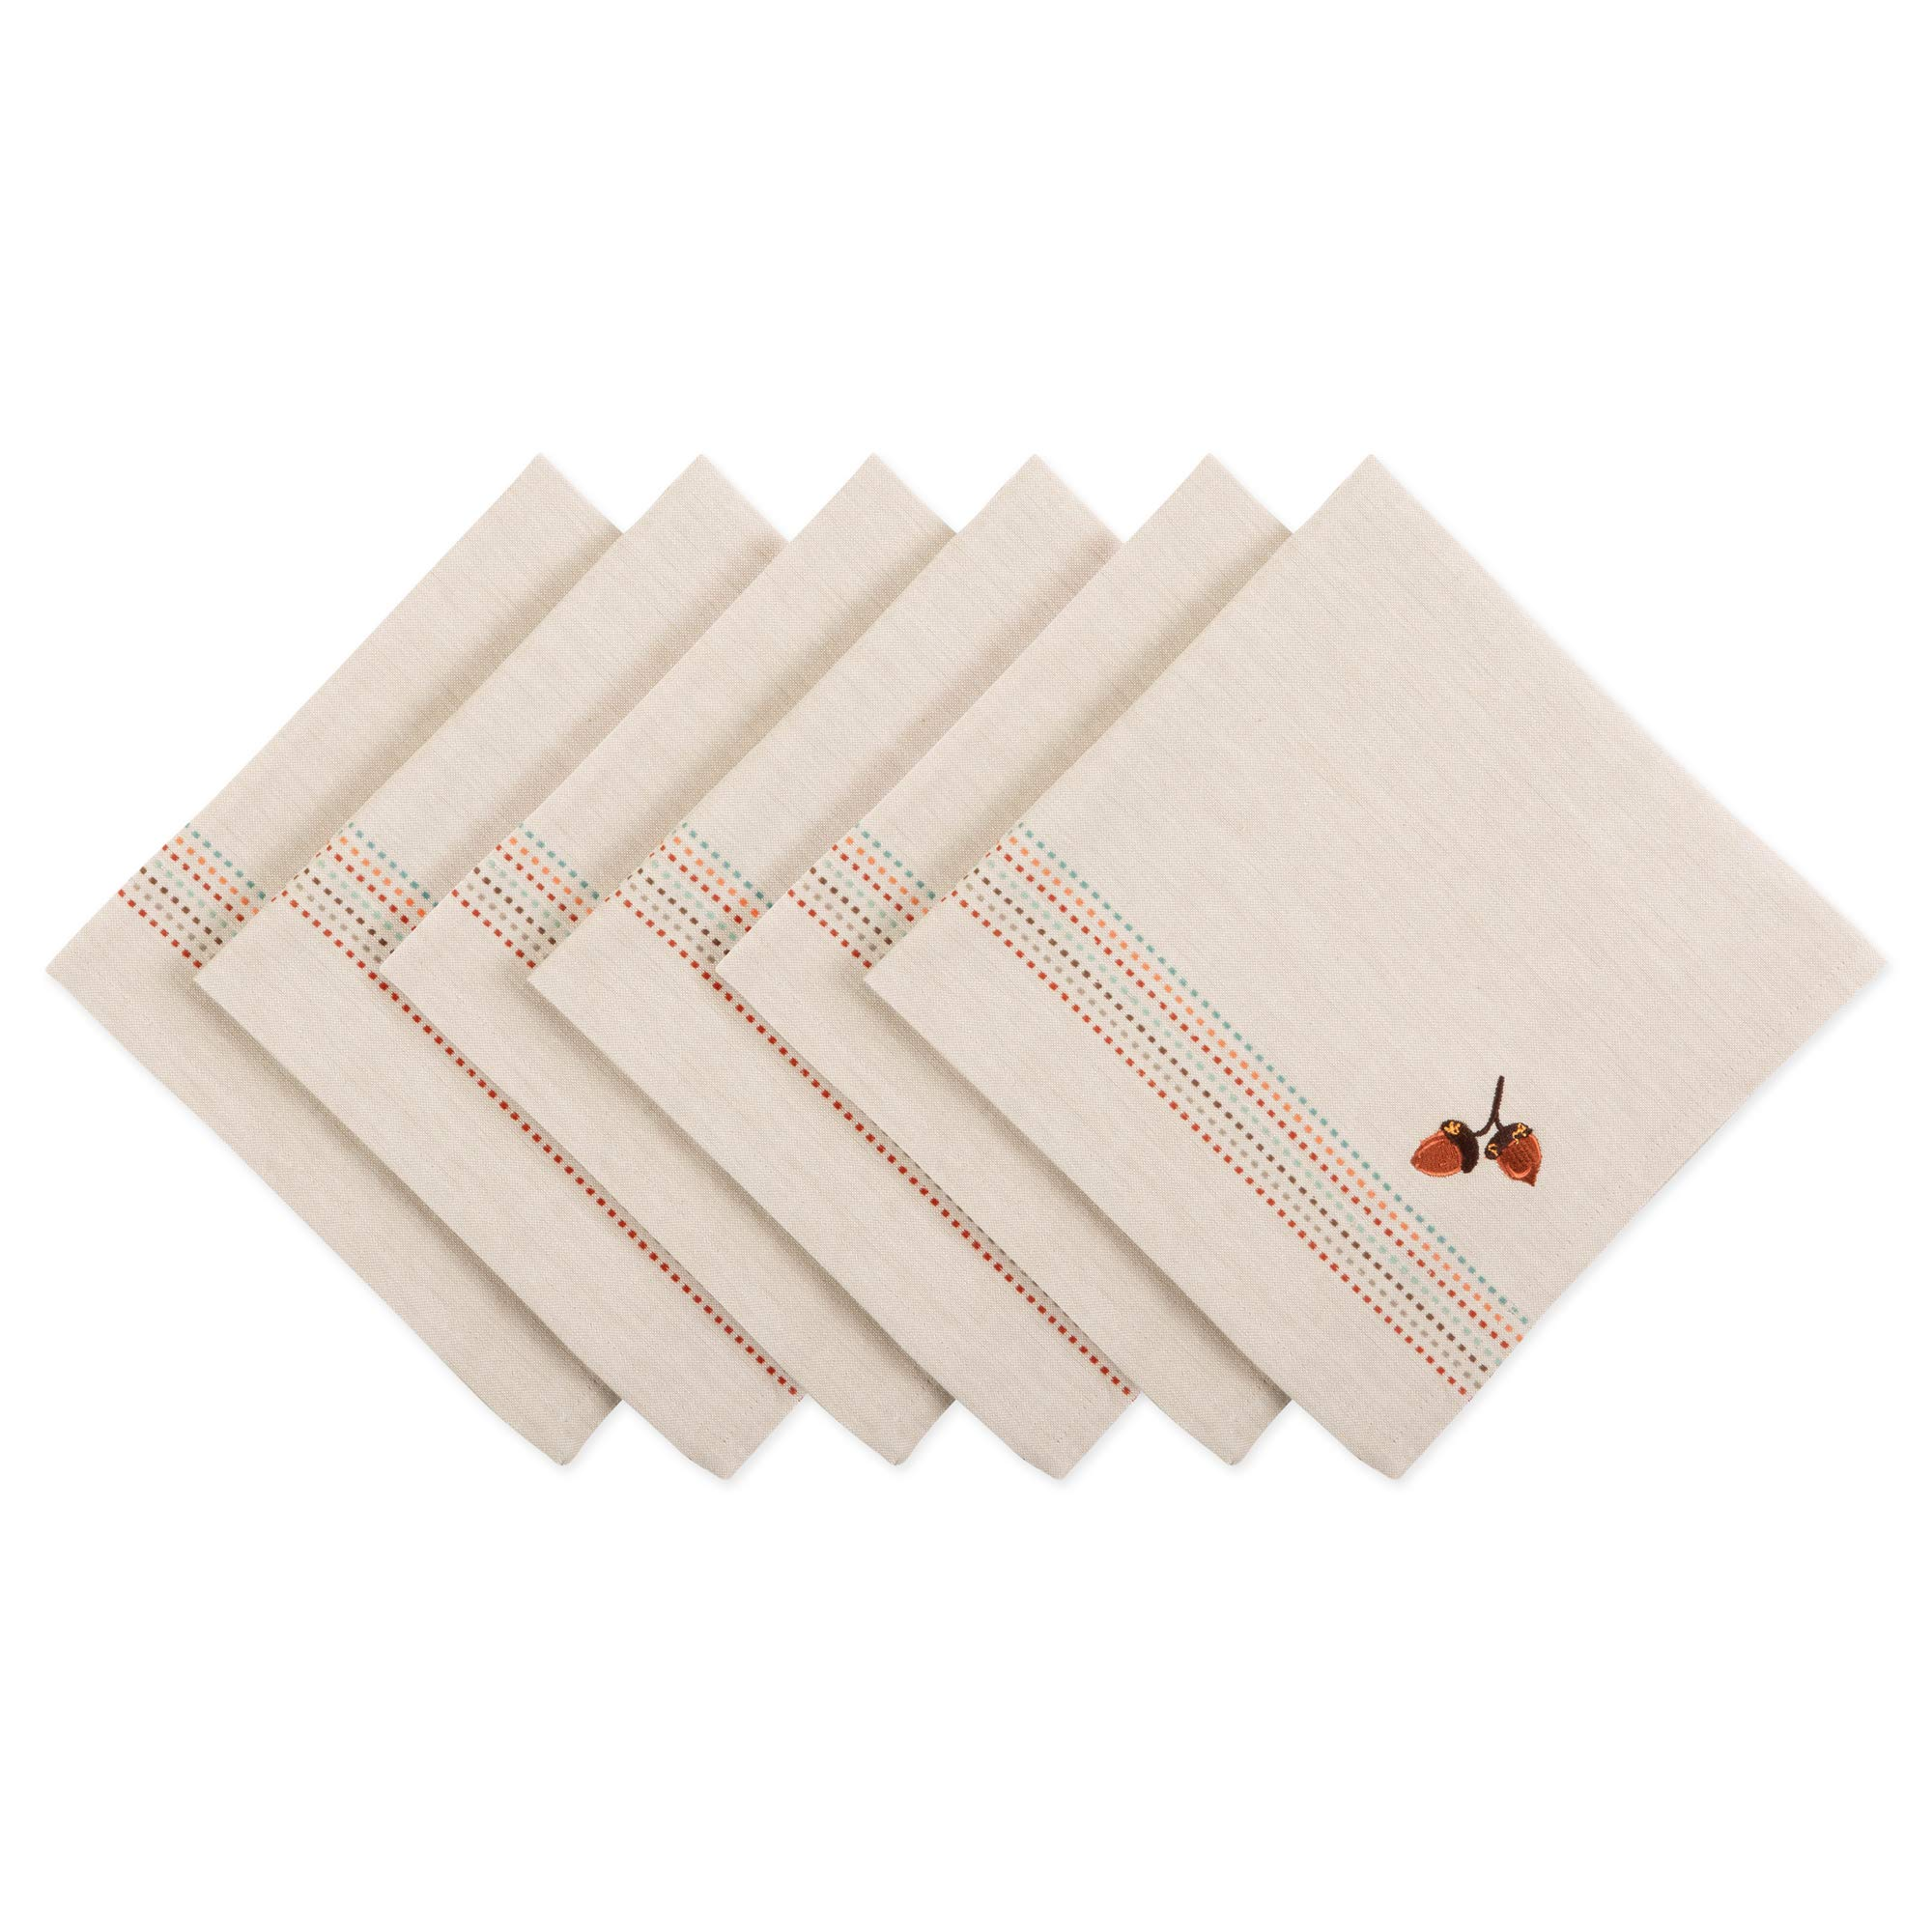 DII CAMZ11227 Oversized Embroidered Cotton Napkin, Perfect for Thanksgiving, Dinner Parties, Friendsgiving and Fall, Set, Acorns by DII